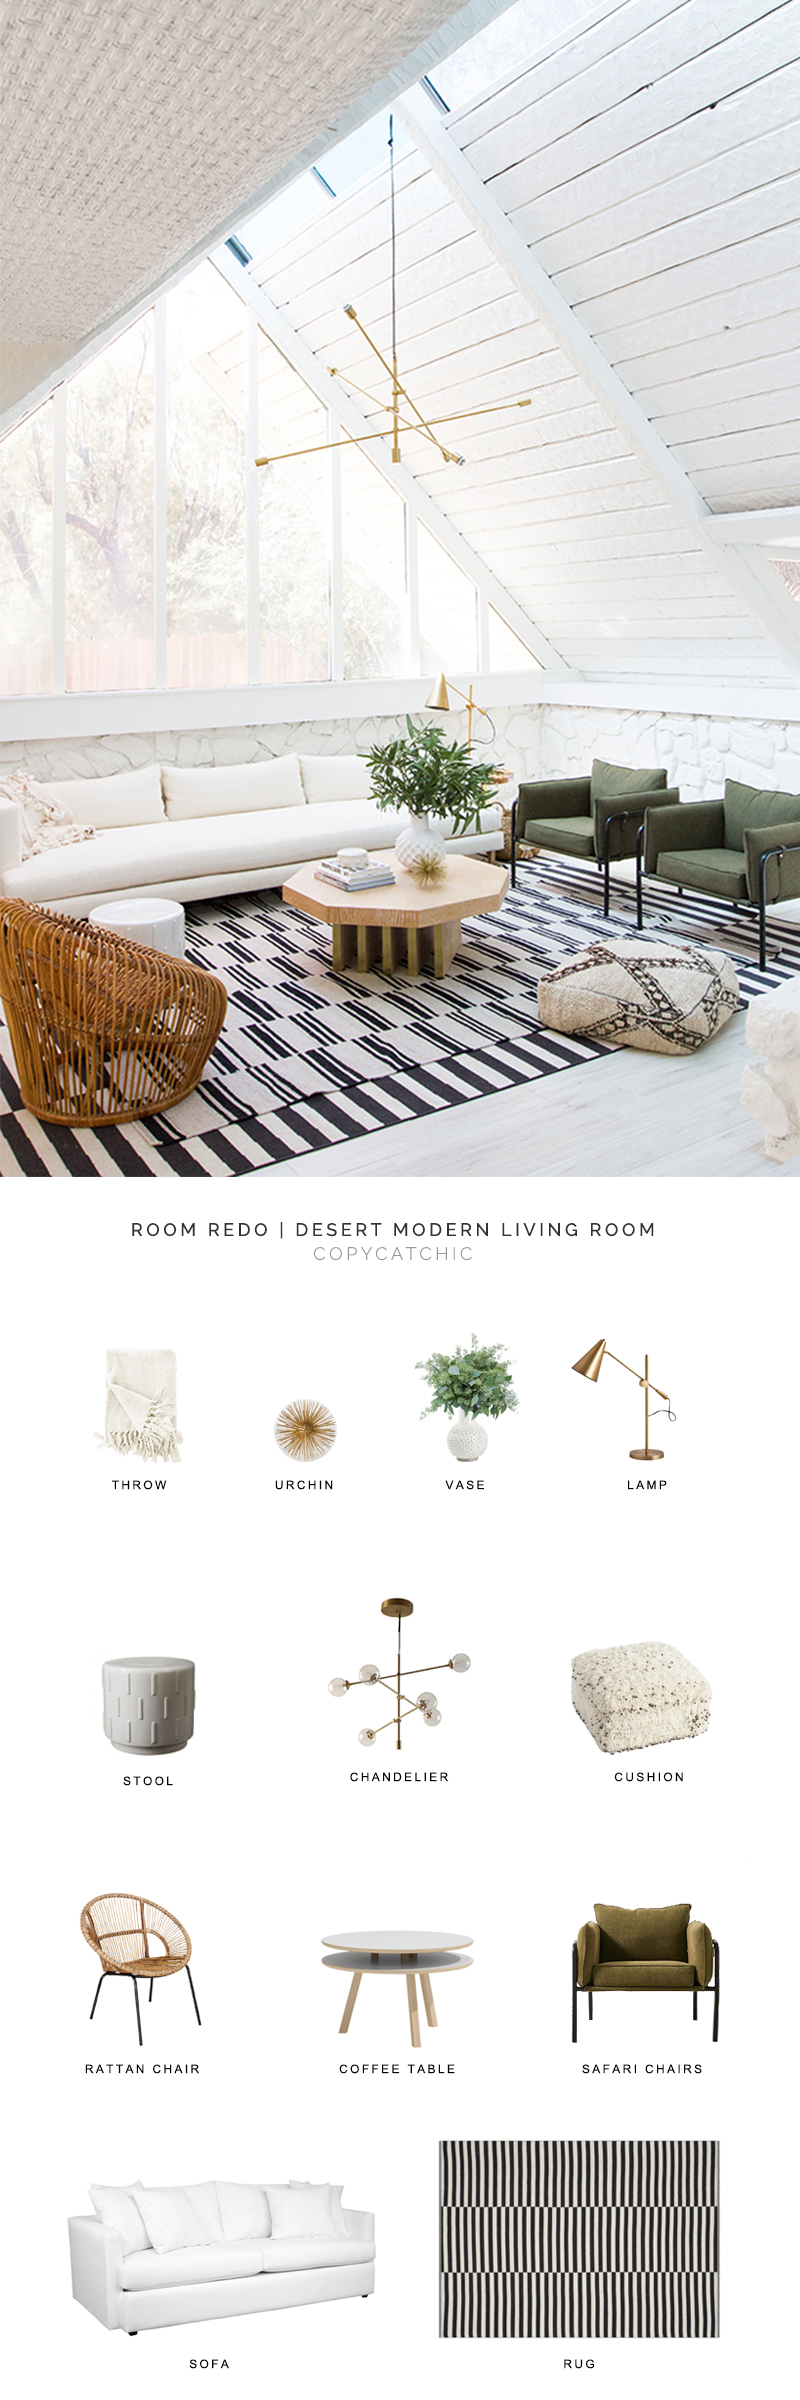 This desert modern living room by Sarah Sherman Samuel gets recreated for less by copycatchic luxe living for less budget home decor and design daily finds and room redos